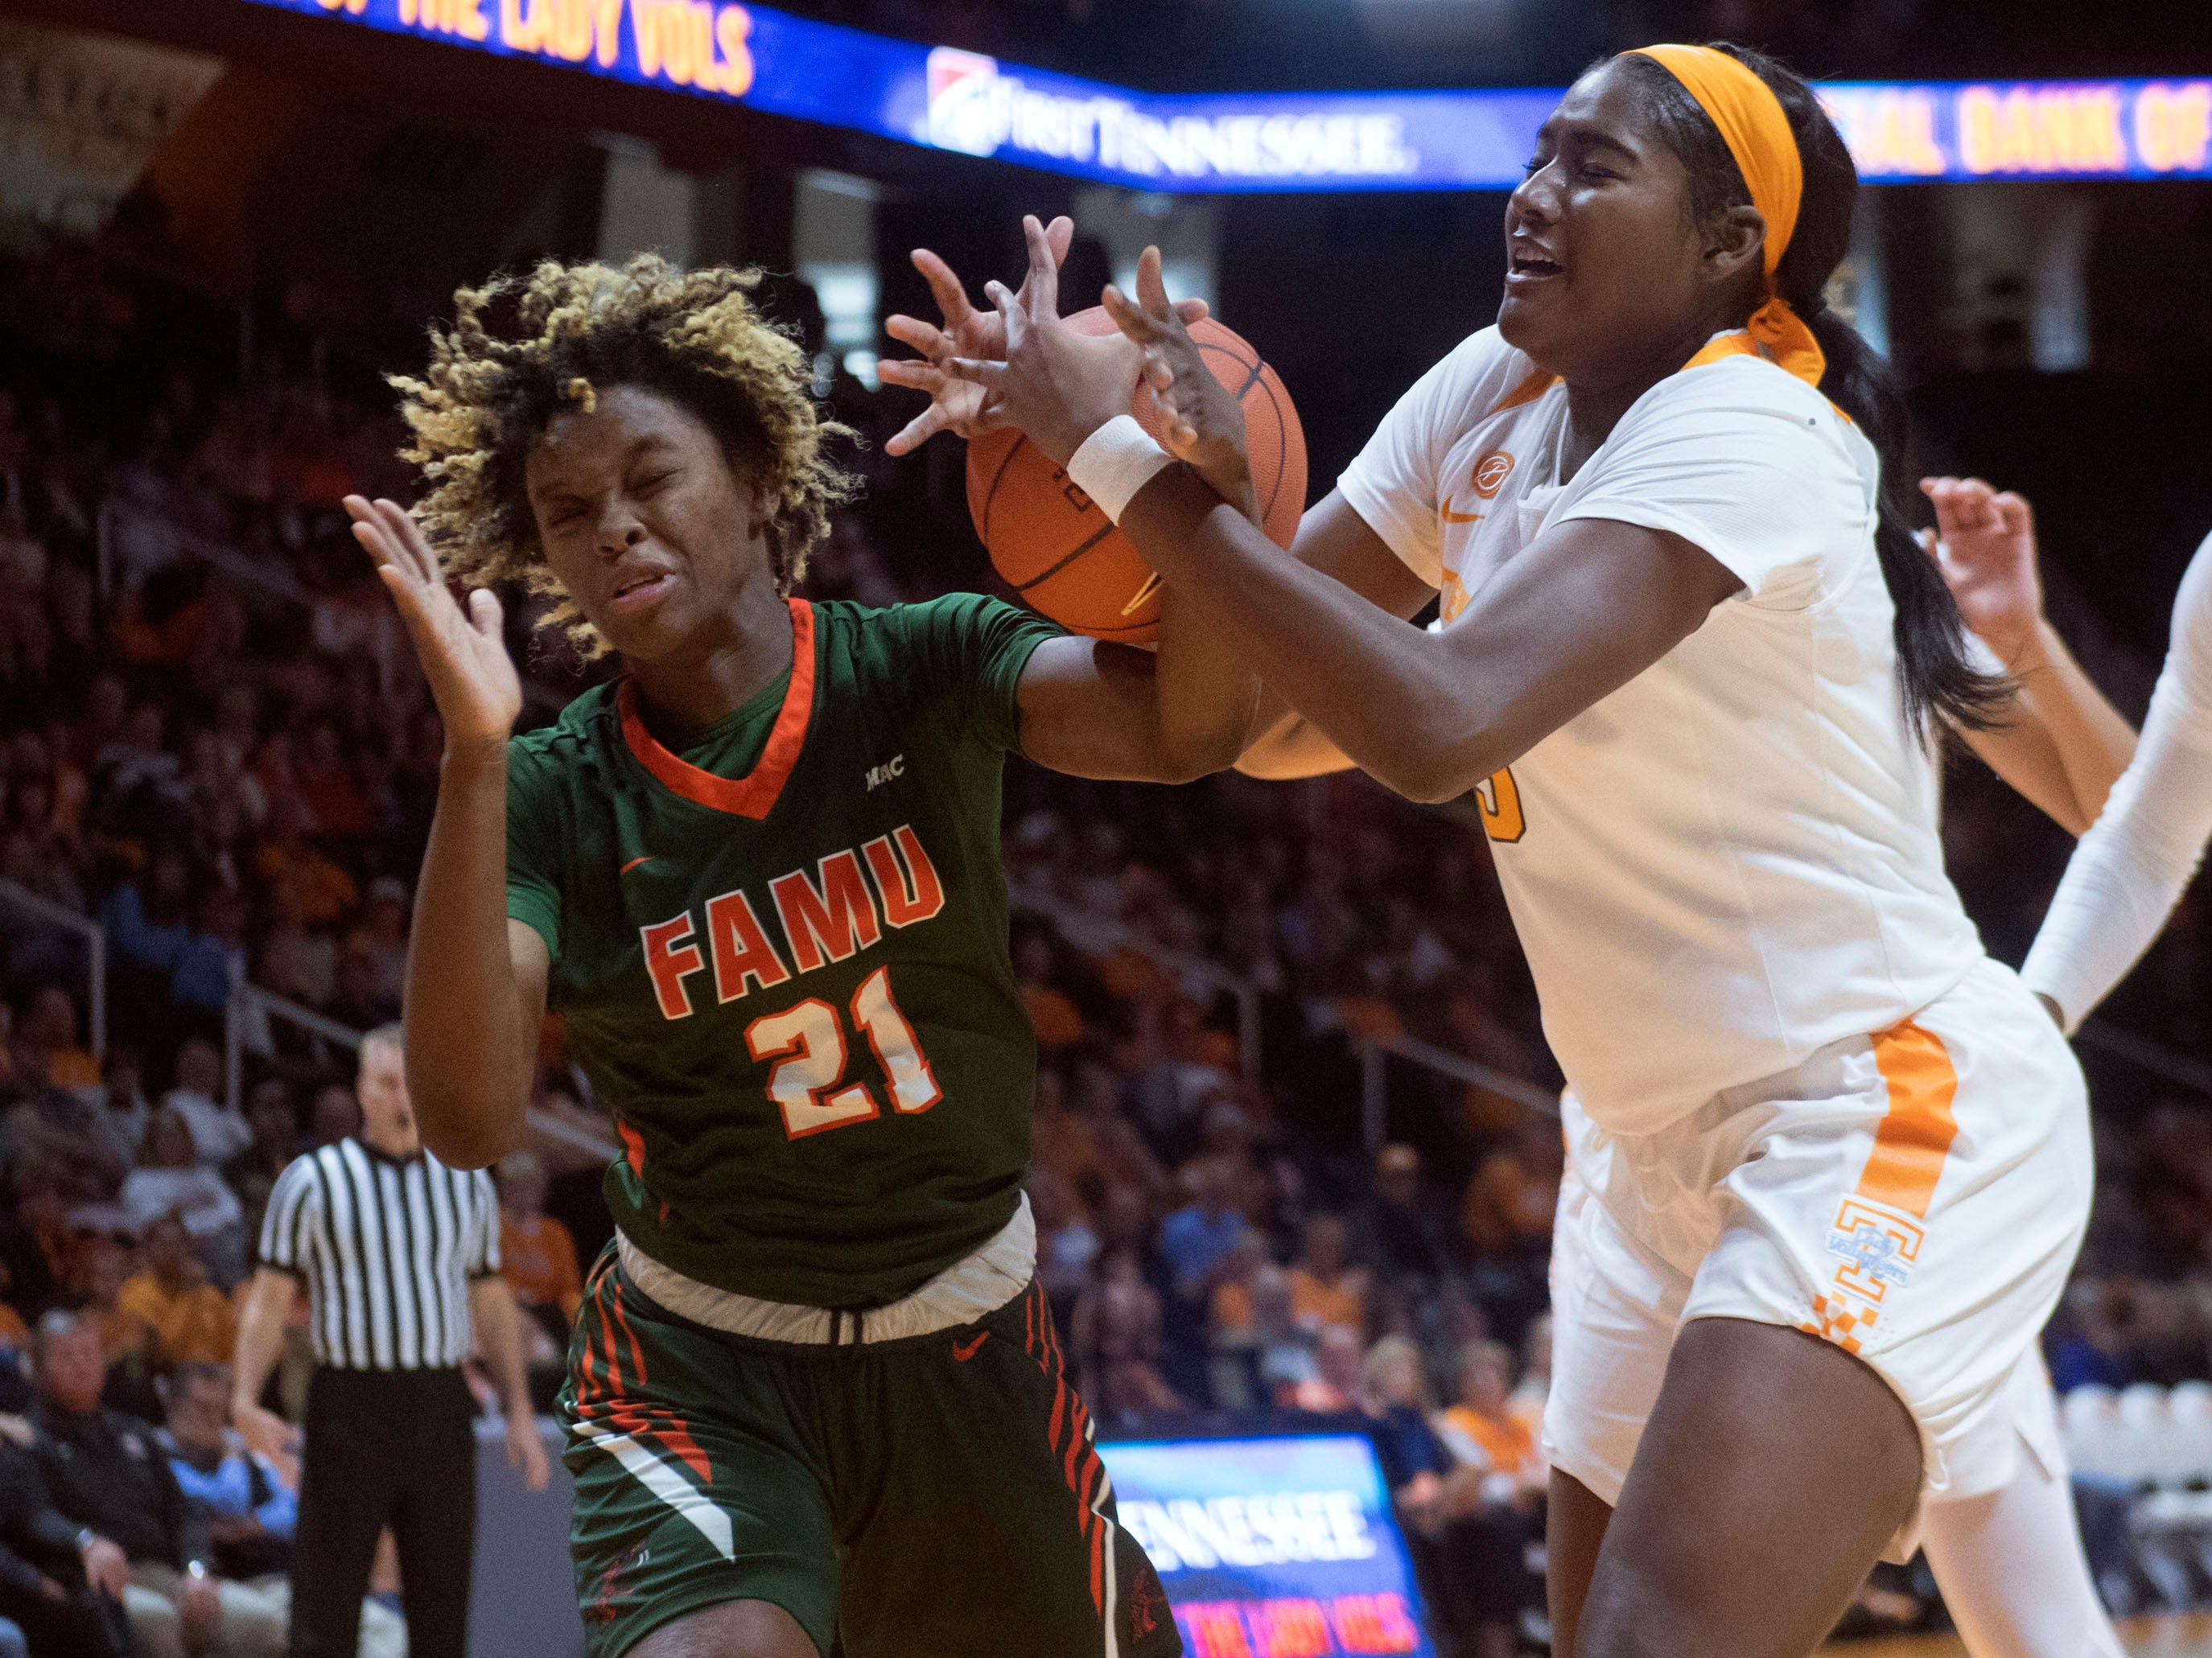 Lady Vols' fast start in rout allows Tennessee to get head start on future games